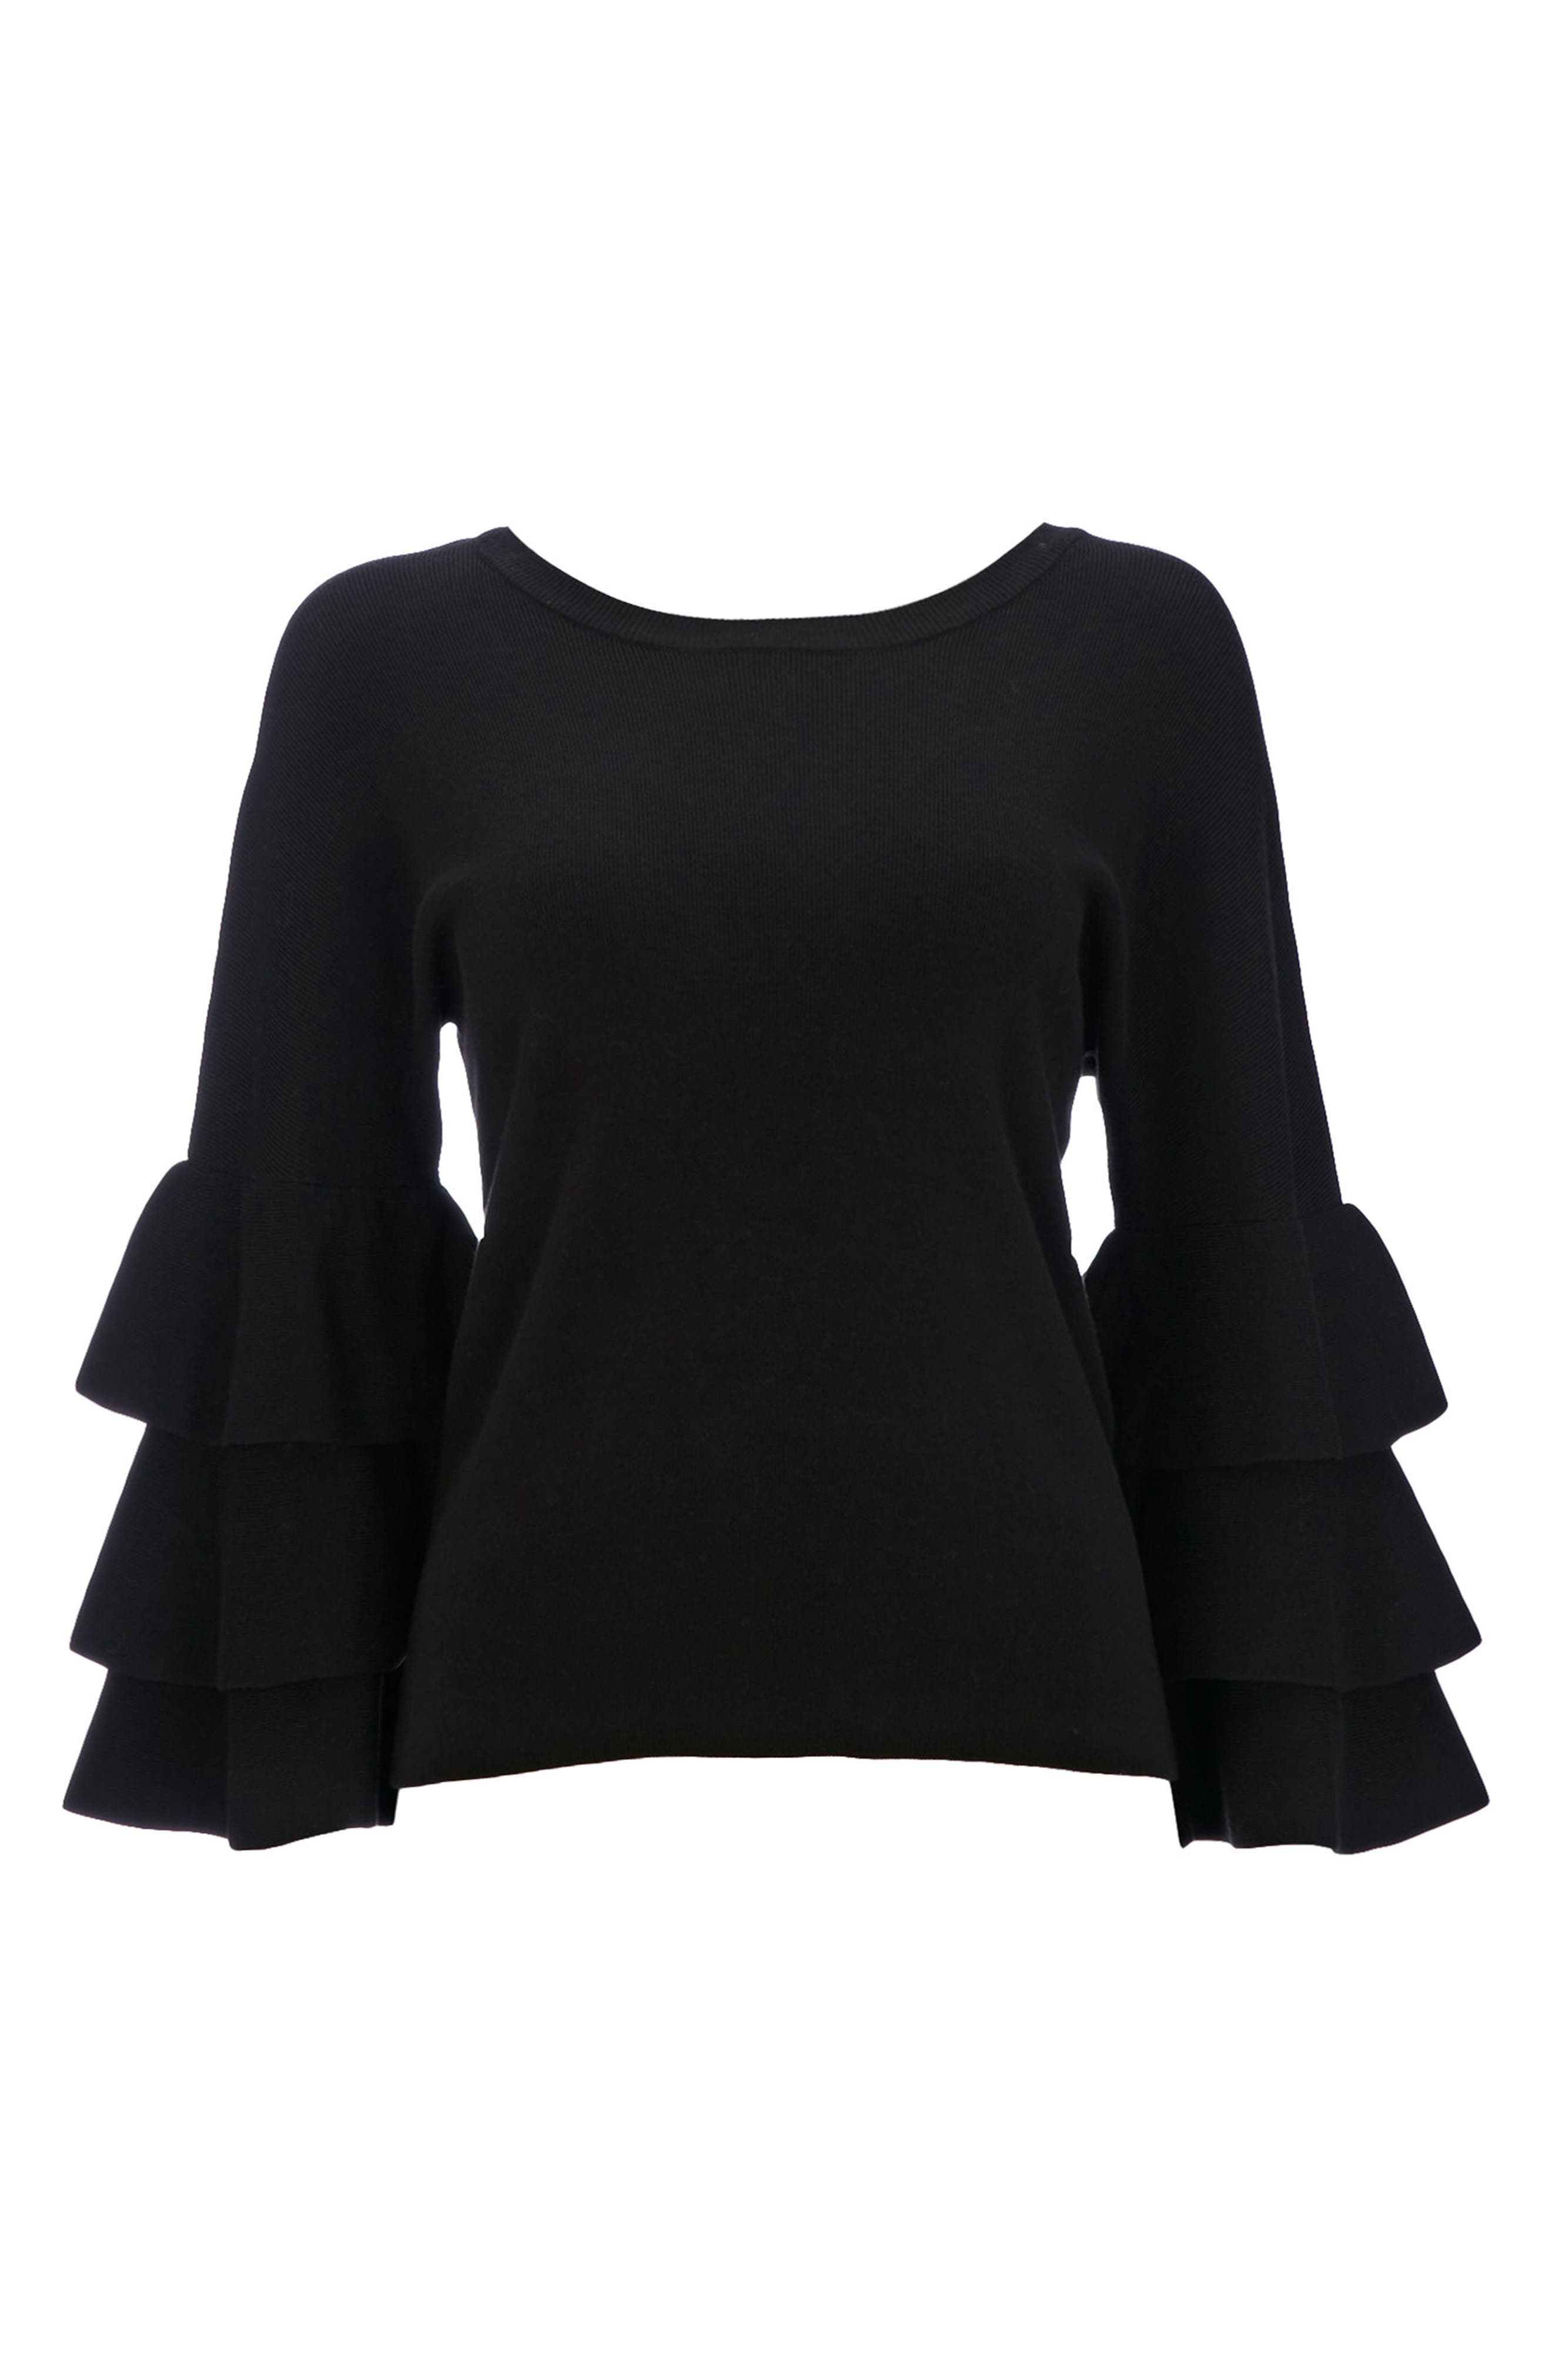 Tiered Ruffle Sleeve Top,                             Alternate thumbnail 4, color,                             Black